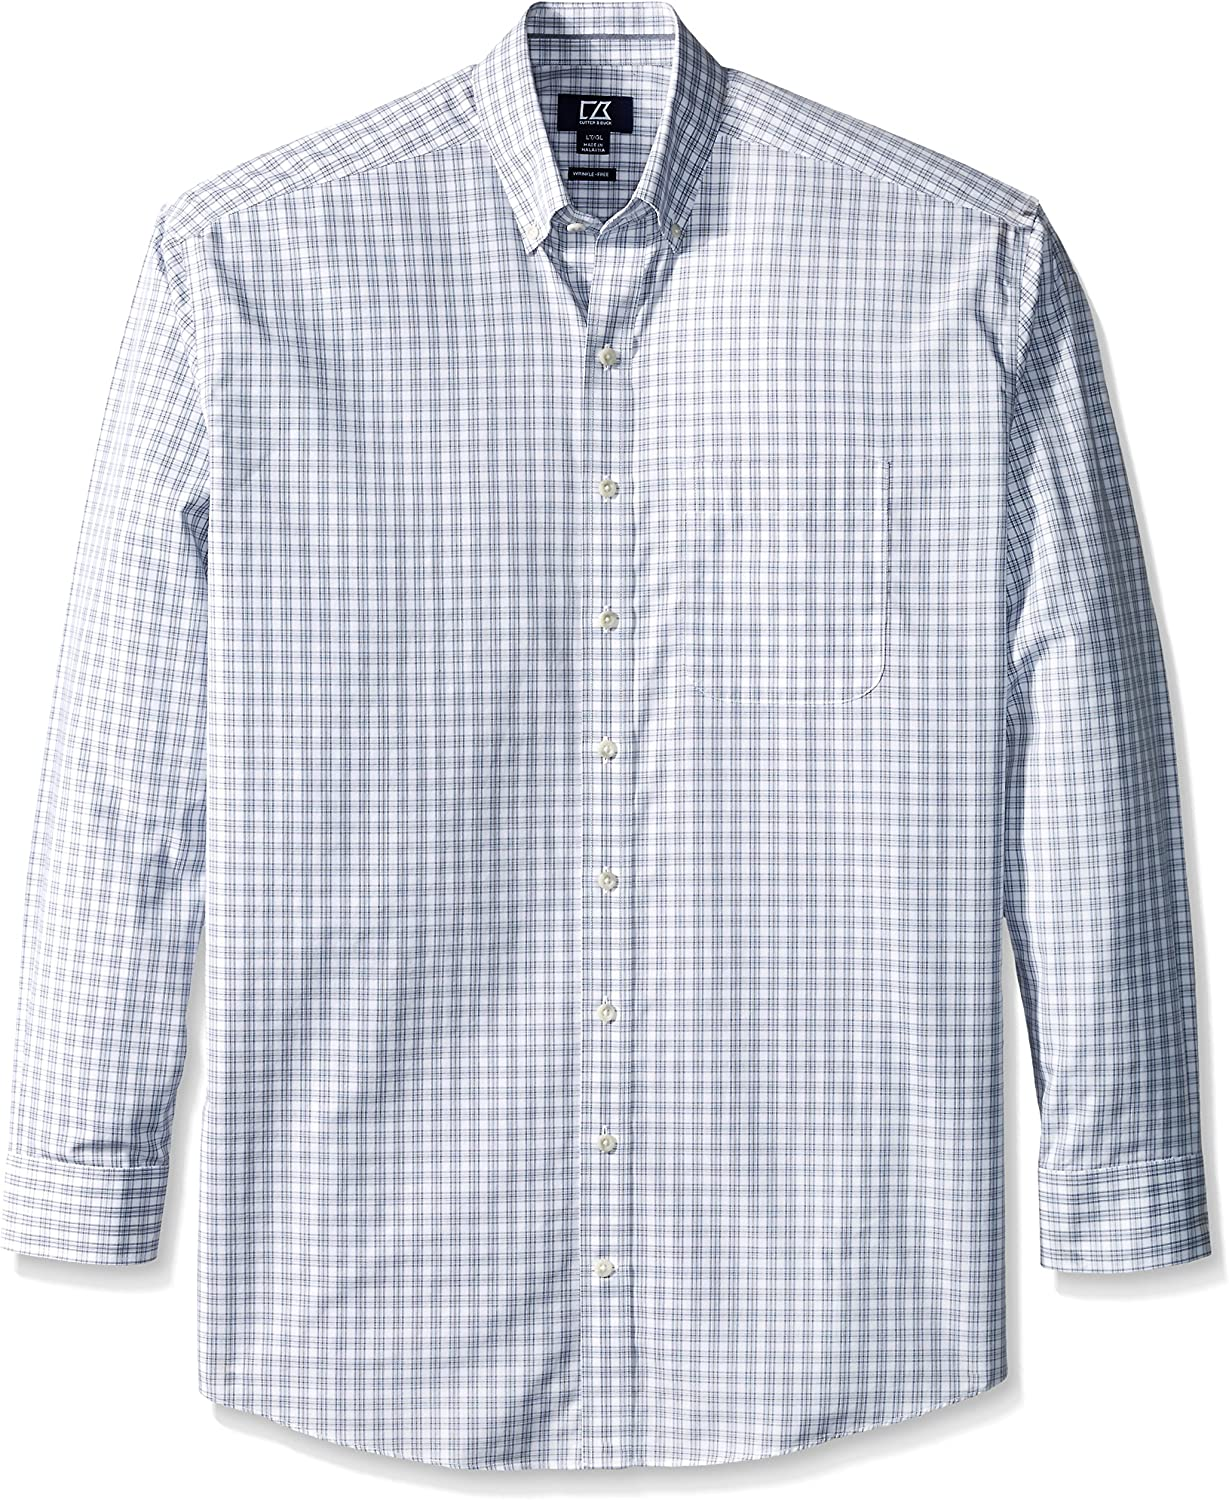 Cutter & Buck Men's Big and Tall Long Sleeve Orcas Wrinkle Free Plaid